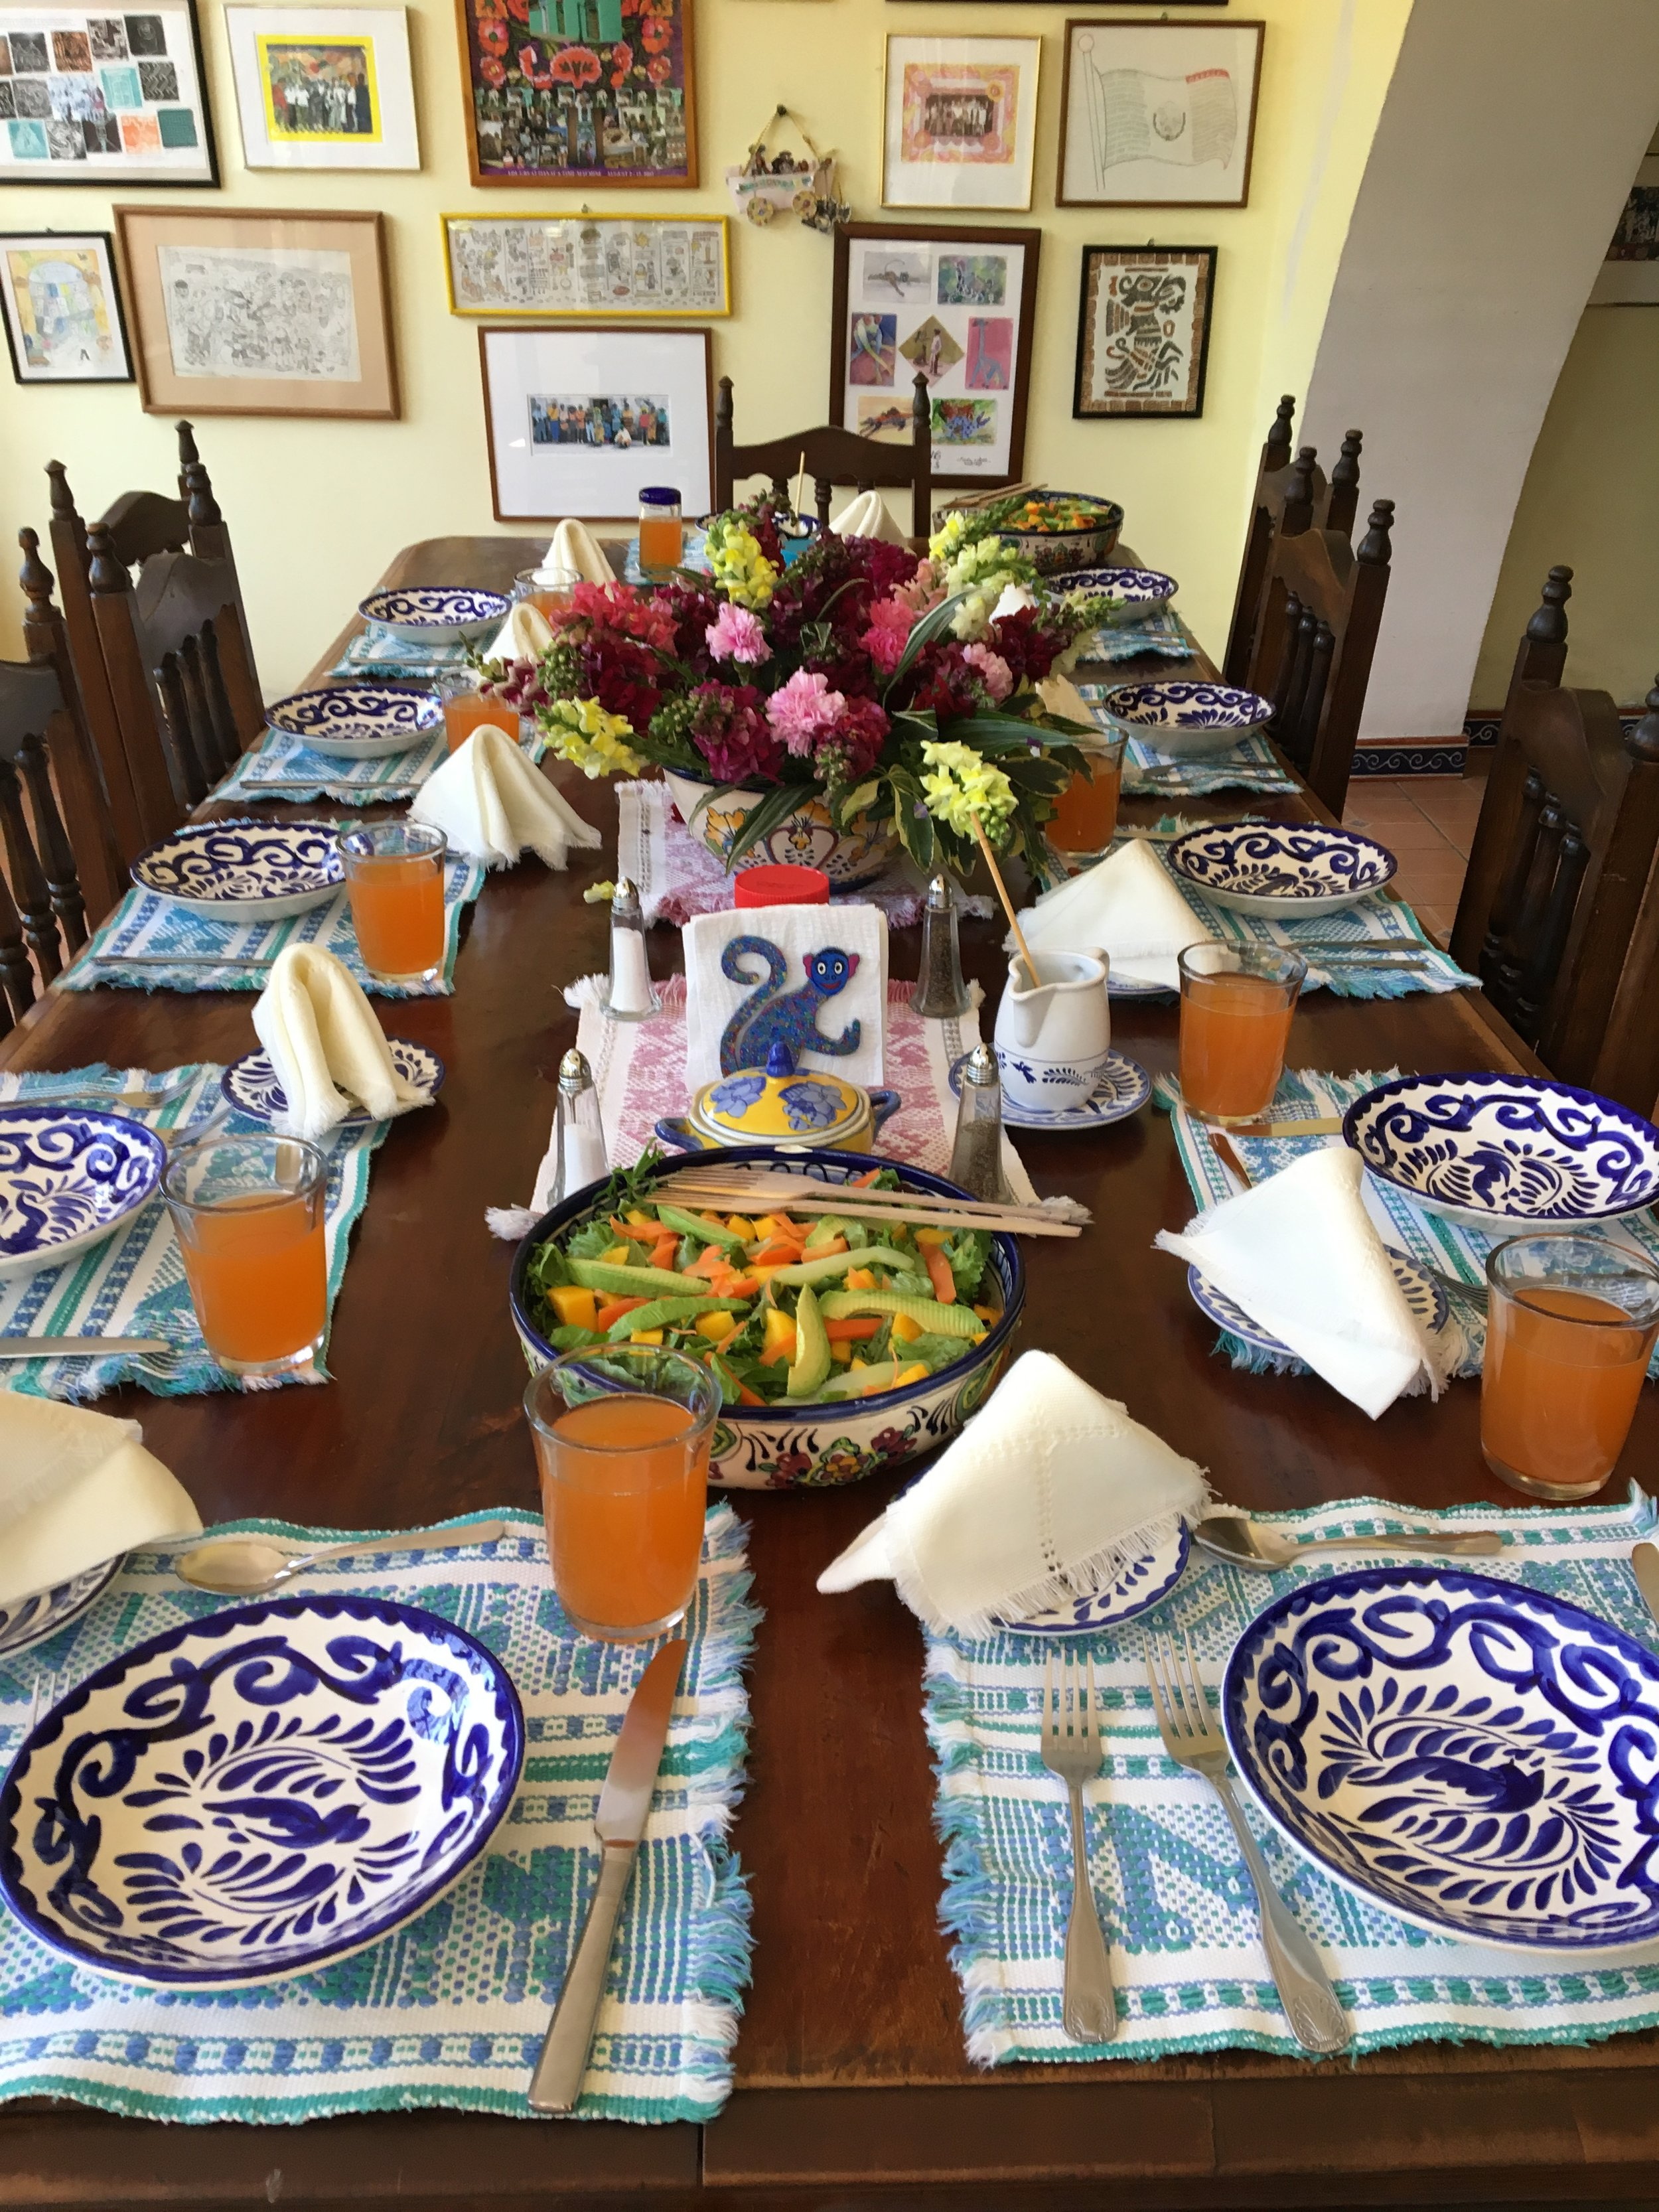 Our dining table at the Casa...delicious food, day and night.